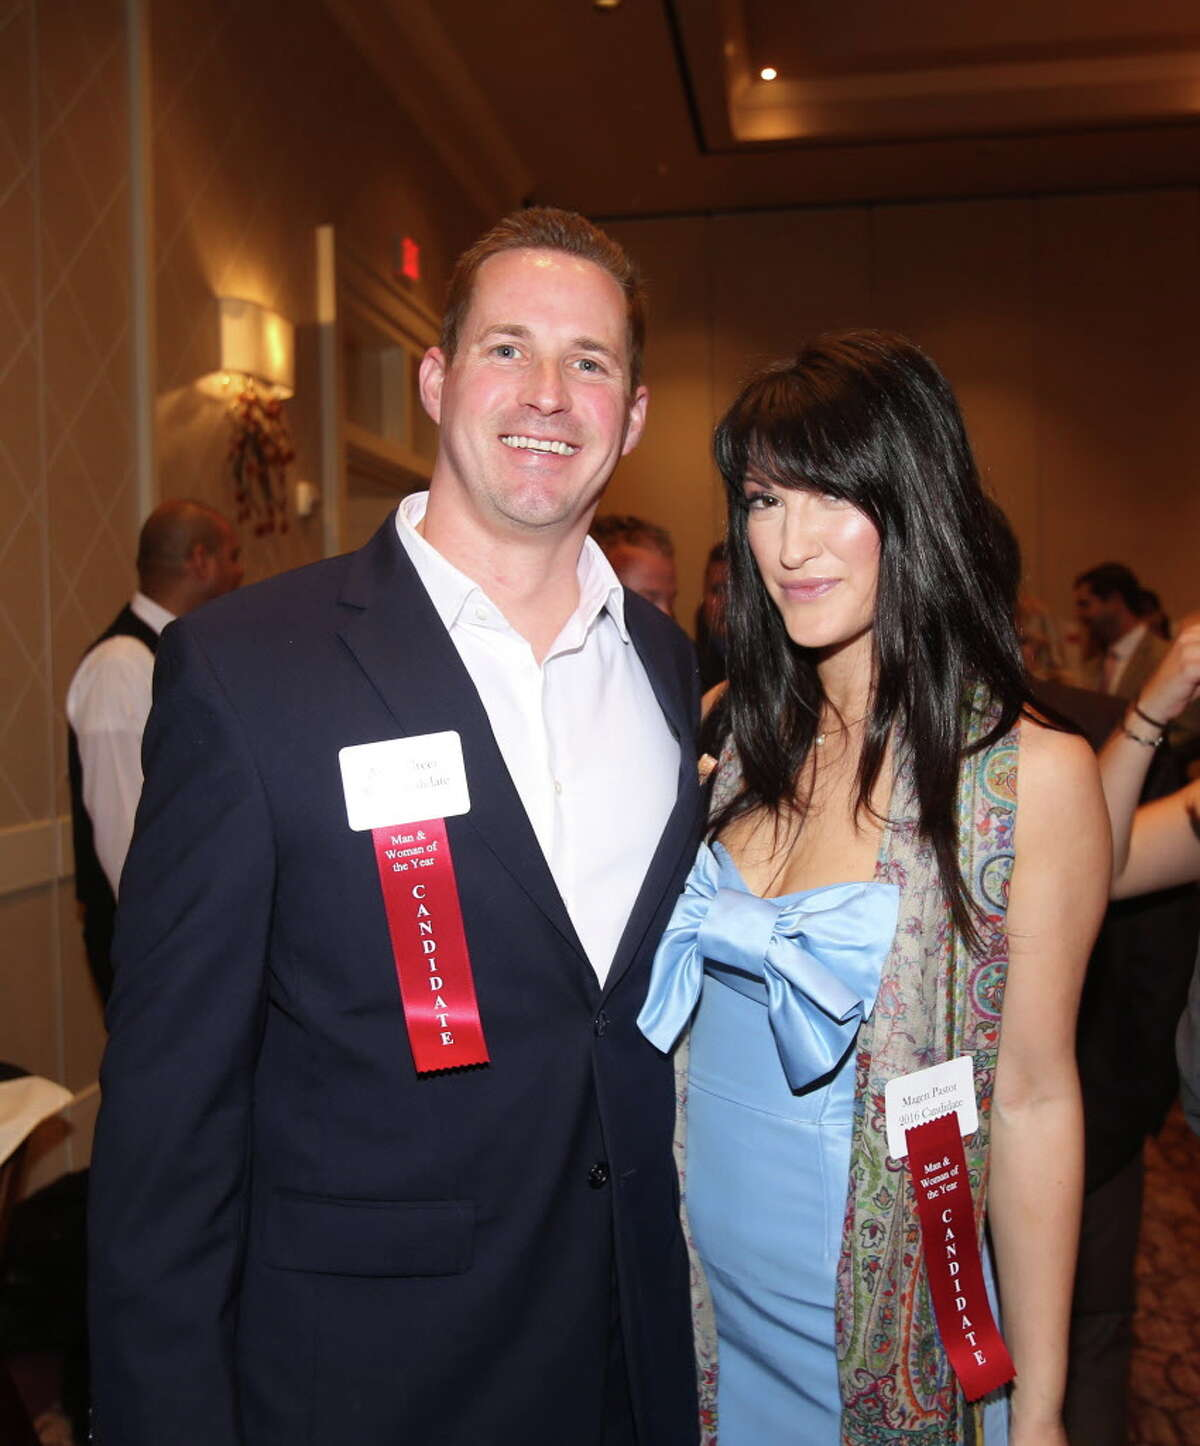 Adam Greer and Magen Pastor at the LLS Man & Woman of the Year kickoff celebration .